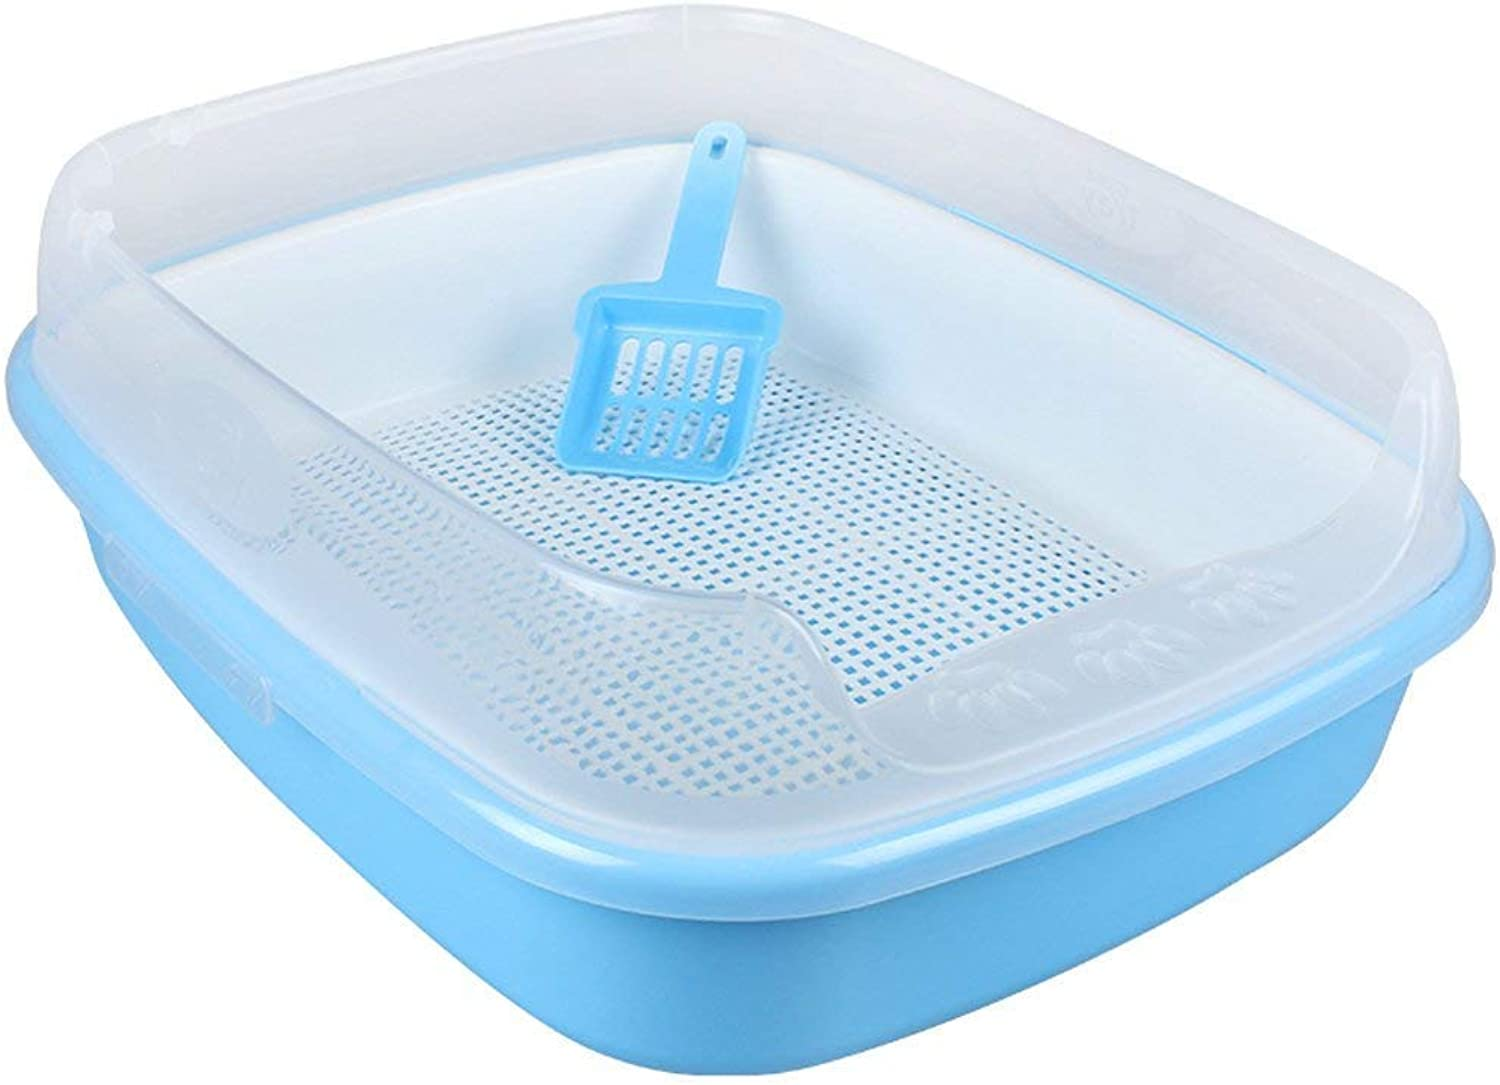 CHONGWFS DoubleLayer ThreeLayer Grid Cat Toilet Litter Box Easy to Clean with Cat Litter Shovel SemiClosed Litter Box Pet Supplies (color   bluee, Size   Style B)